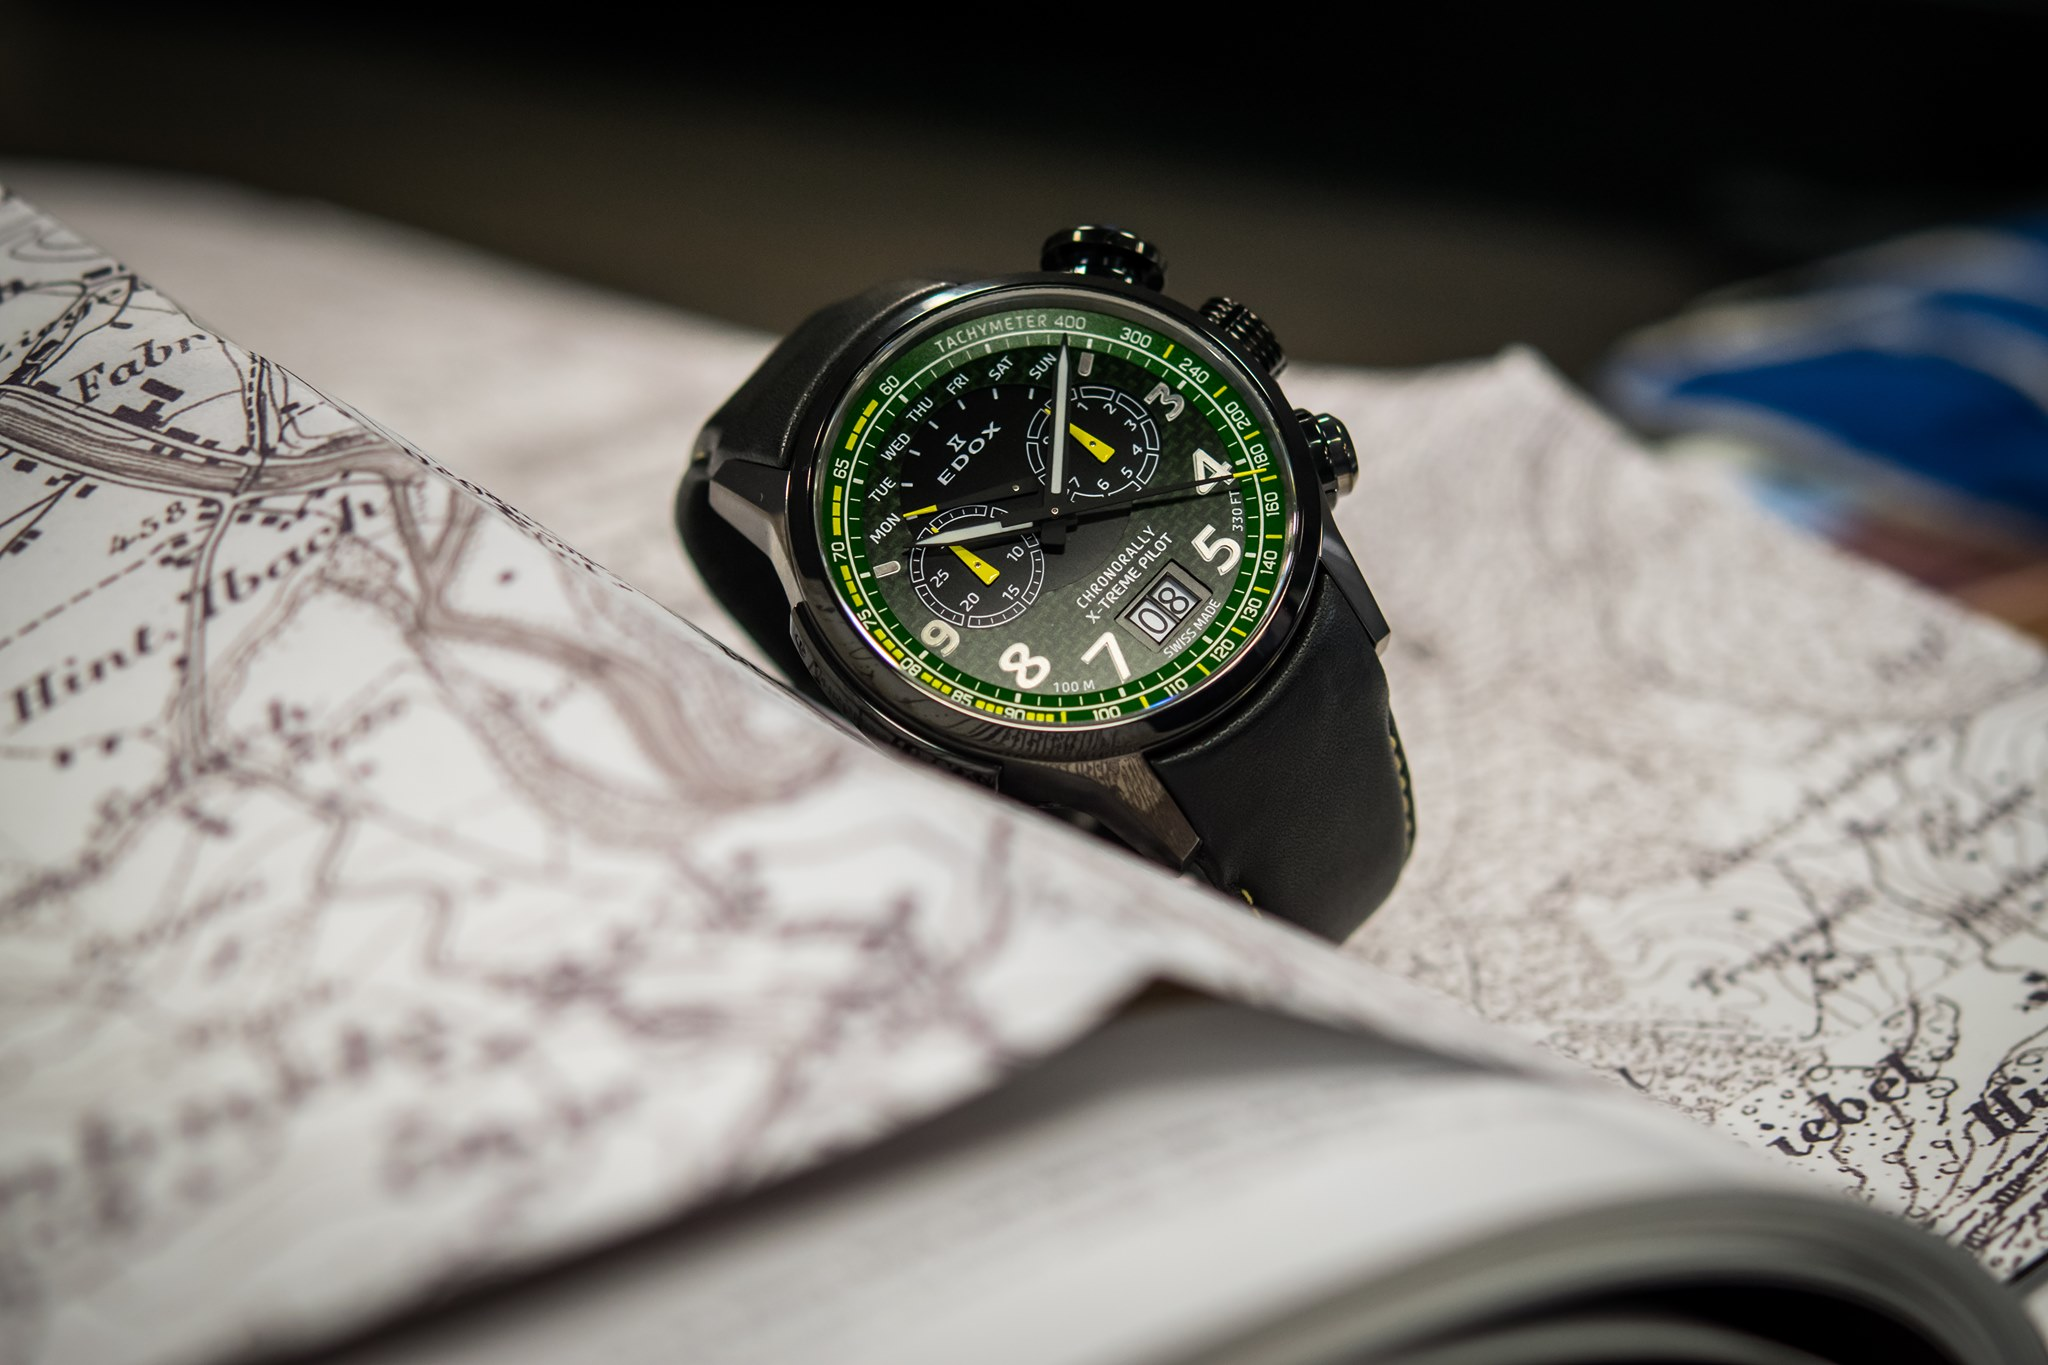 Edox Chronorally X-Treme Pilot Limited Edition 2020